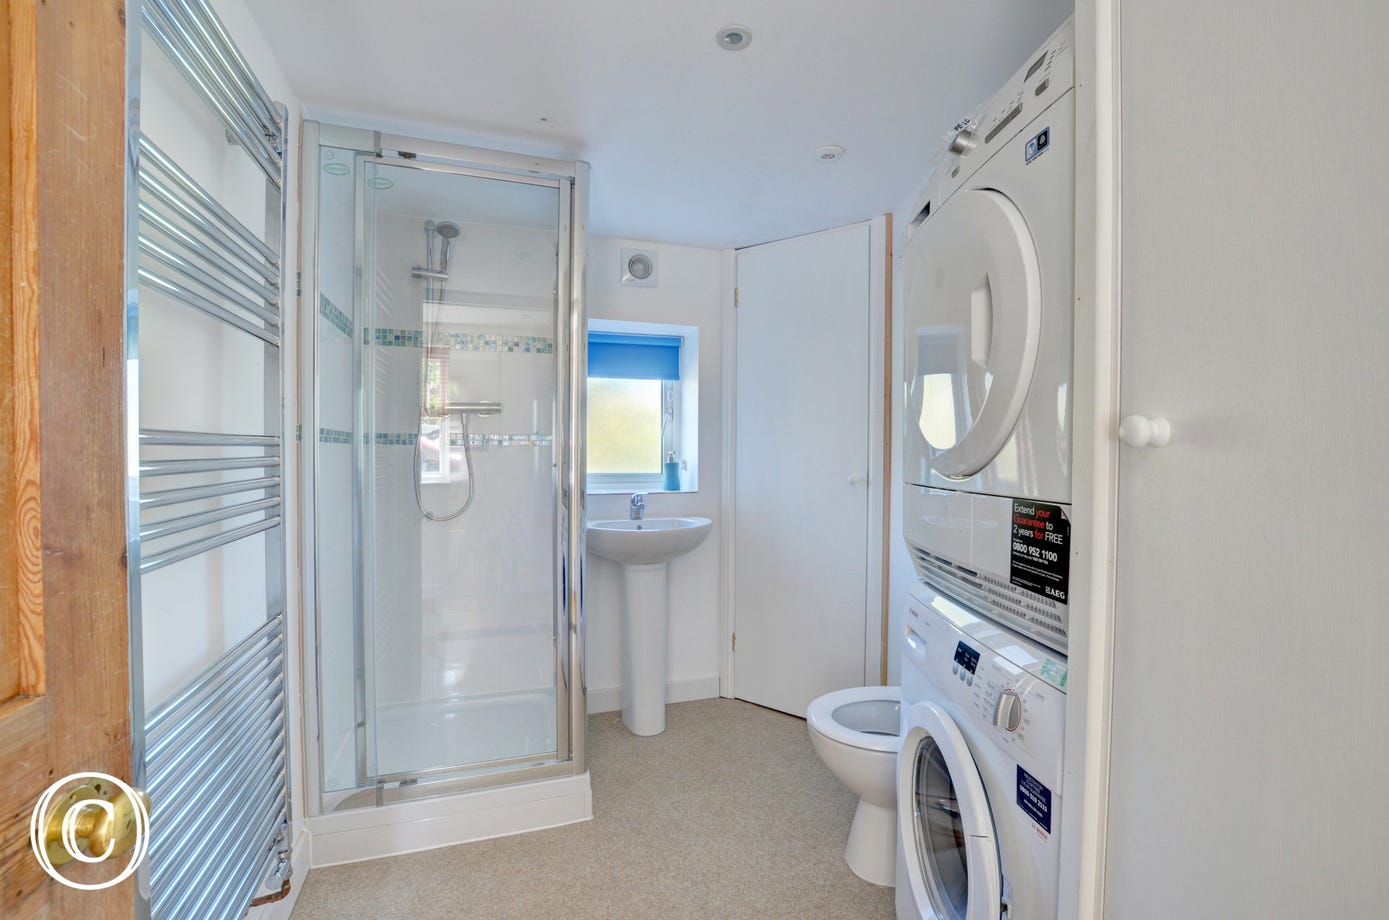 Shower room with washer/dryer